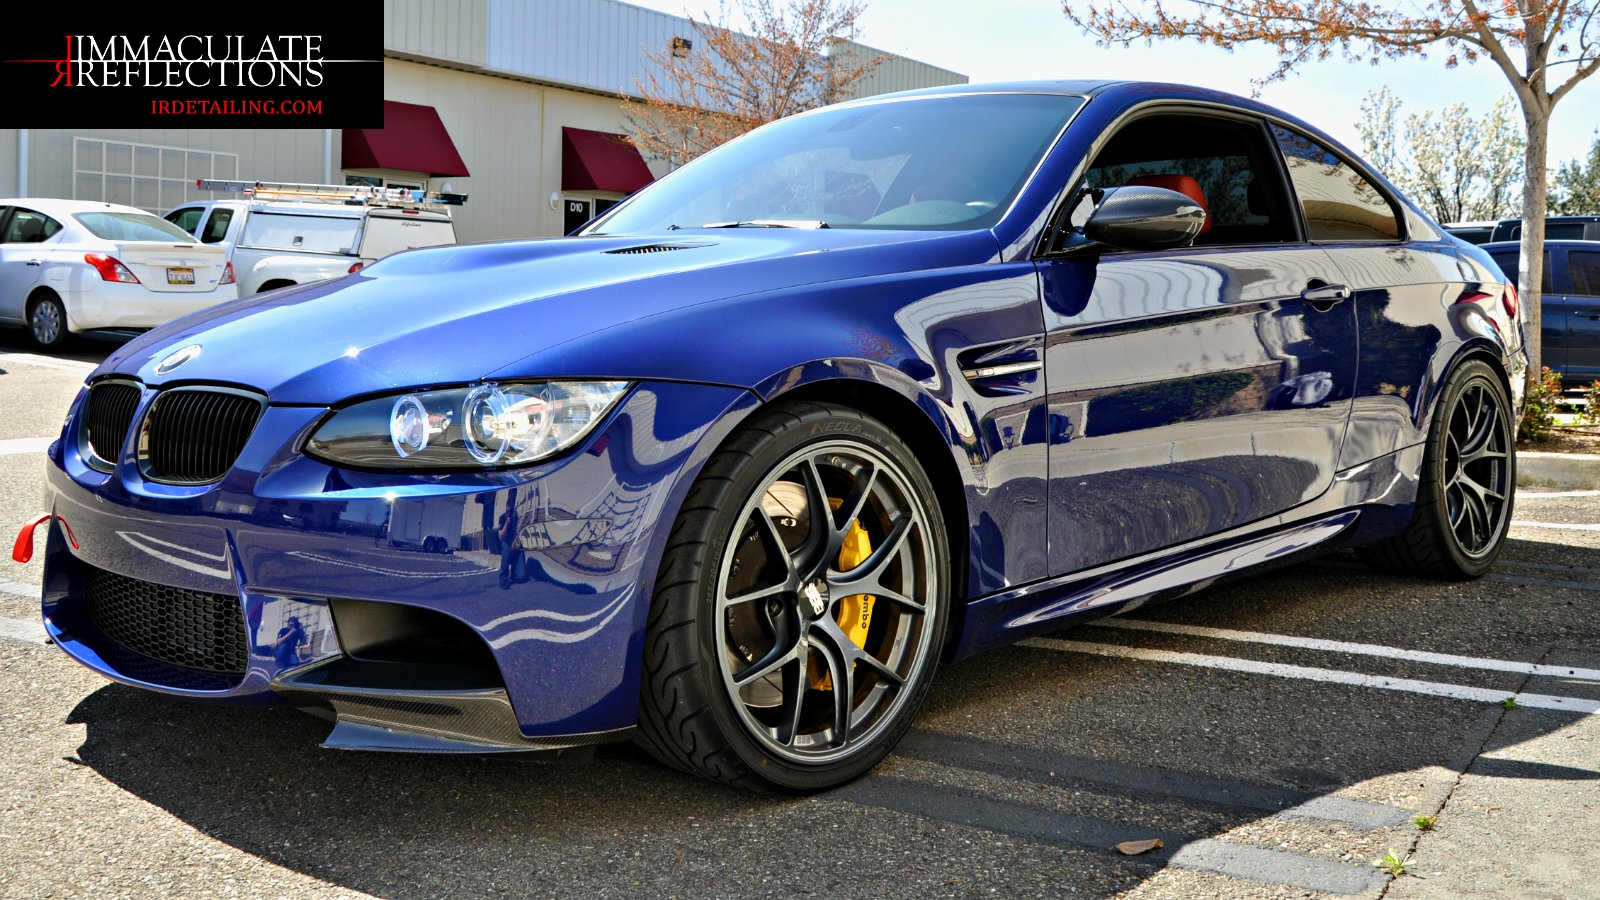 BMW M3 is as fierce as she is beautiful after Immaculate Reflections Paint Correction, CQuartz Finest Reserve, and Leather and Fabric Coating Detail.